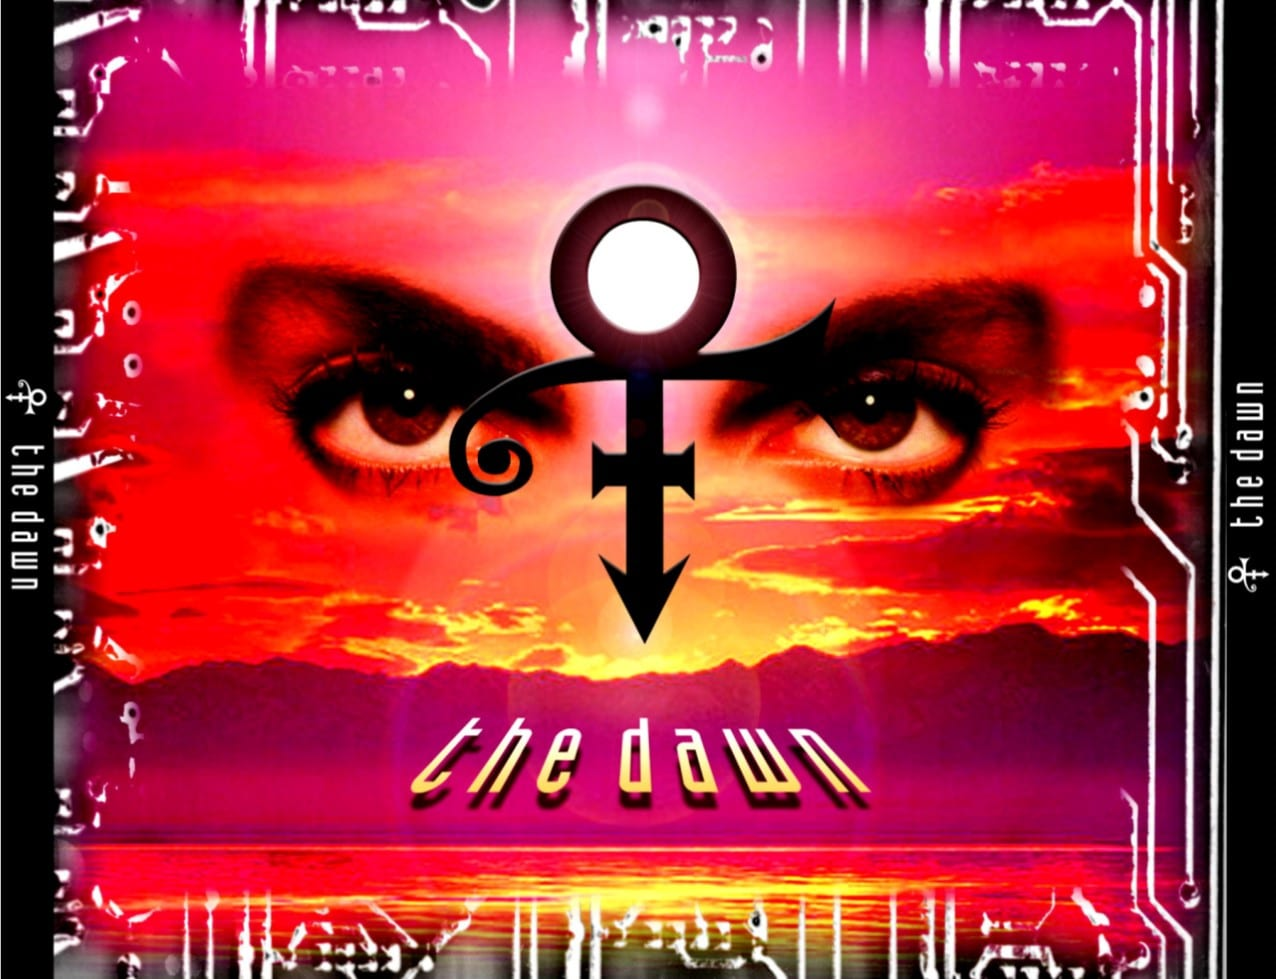 Prince - Black Friday (2008) 5 CD SET 15